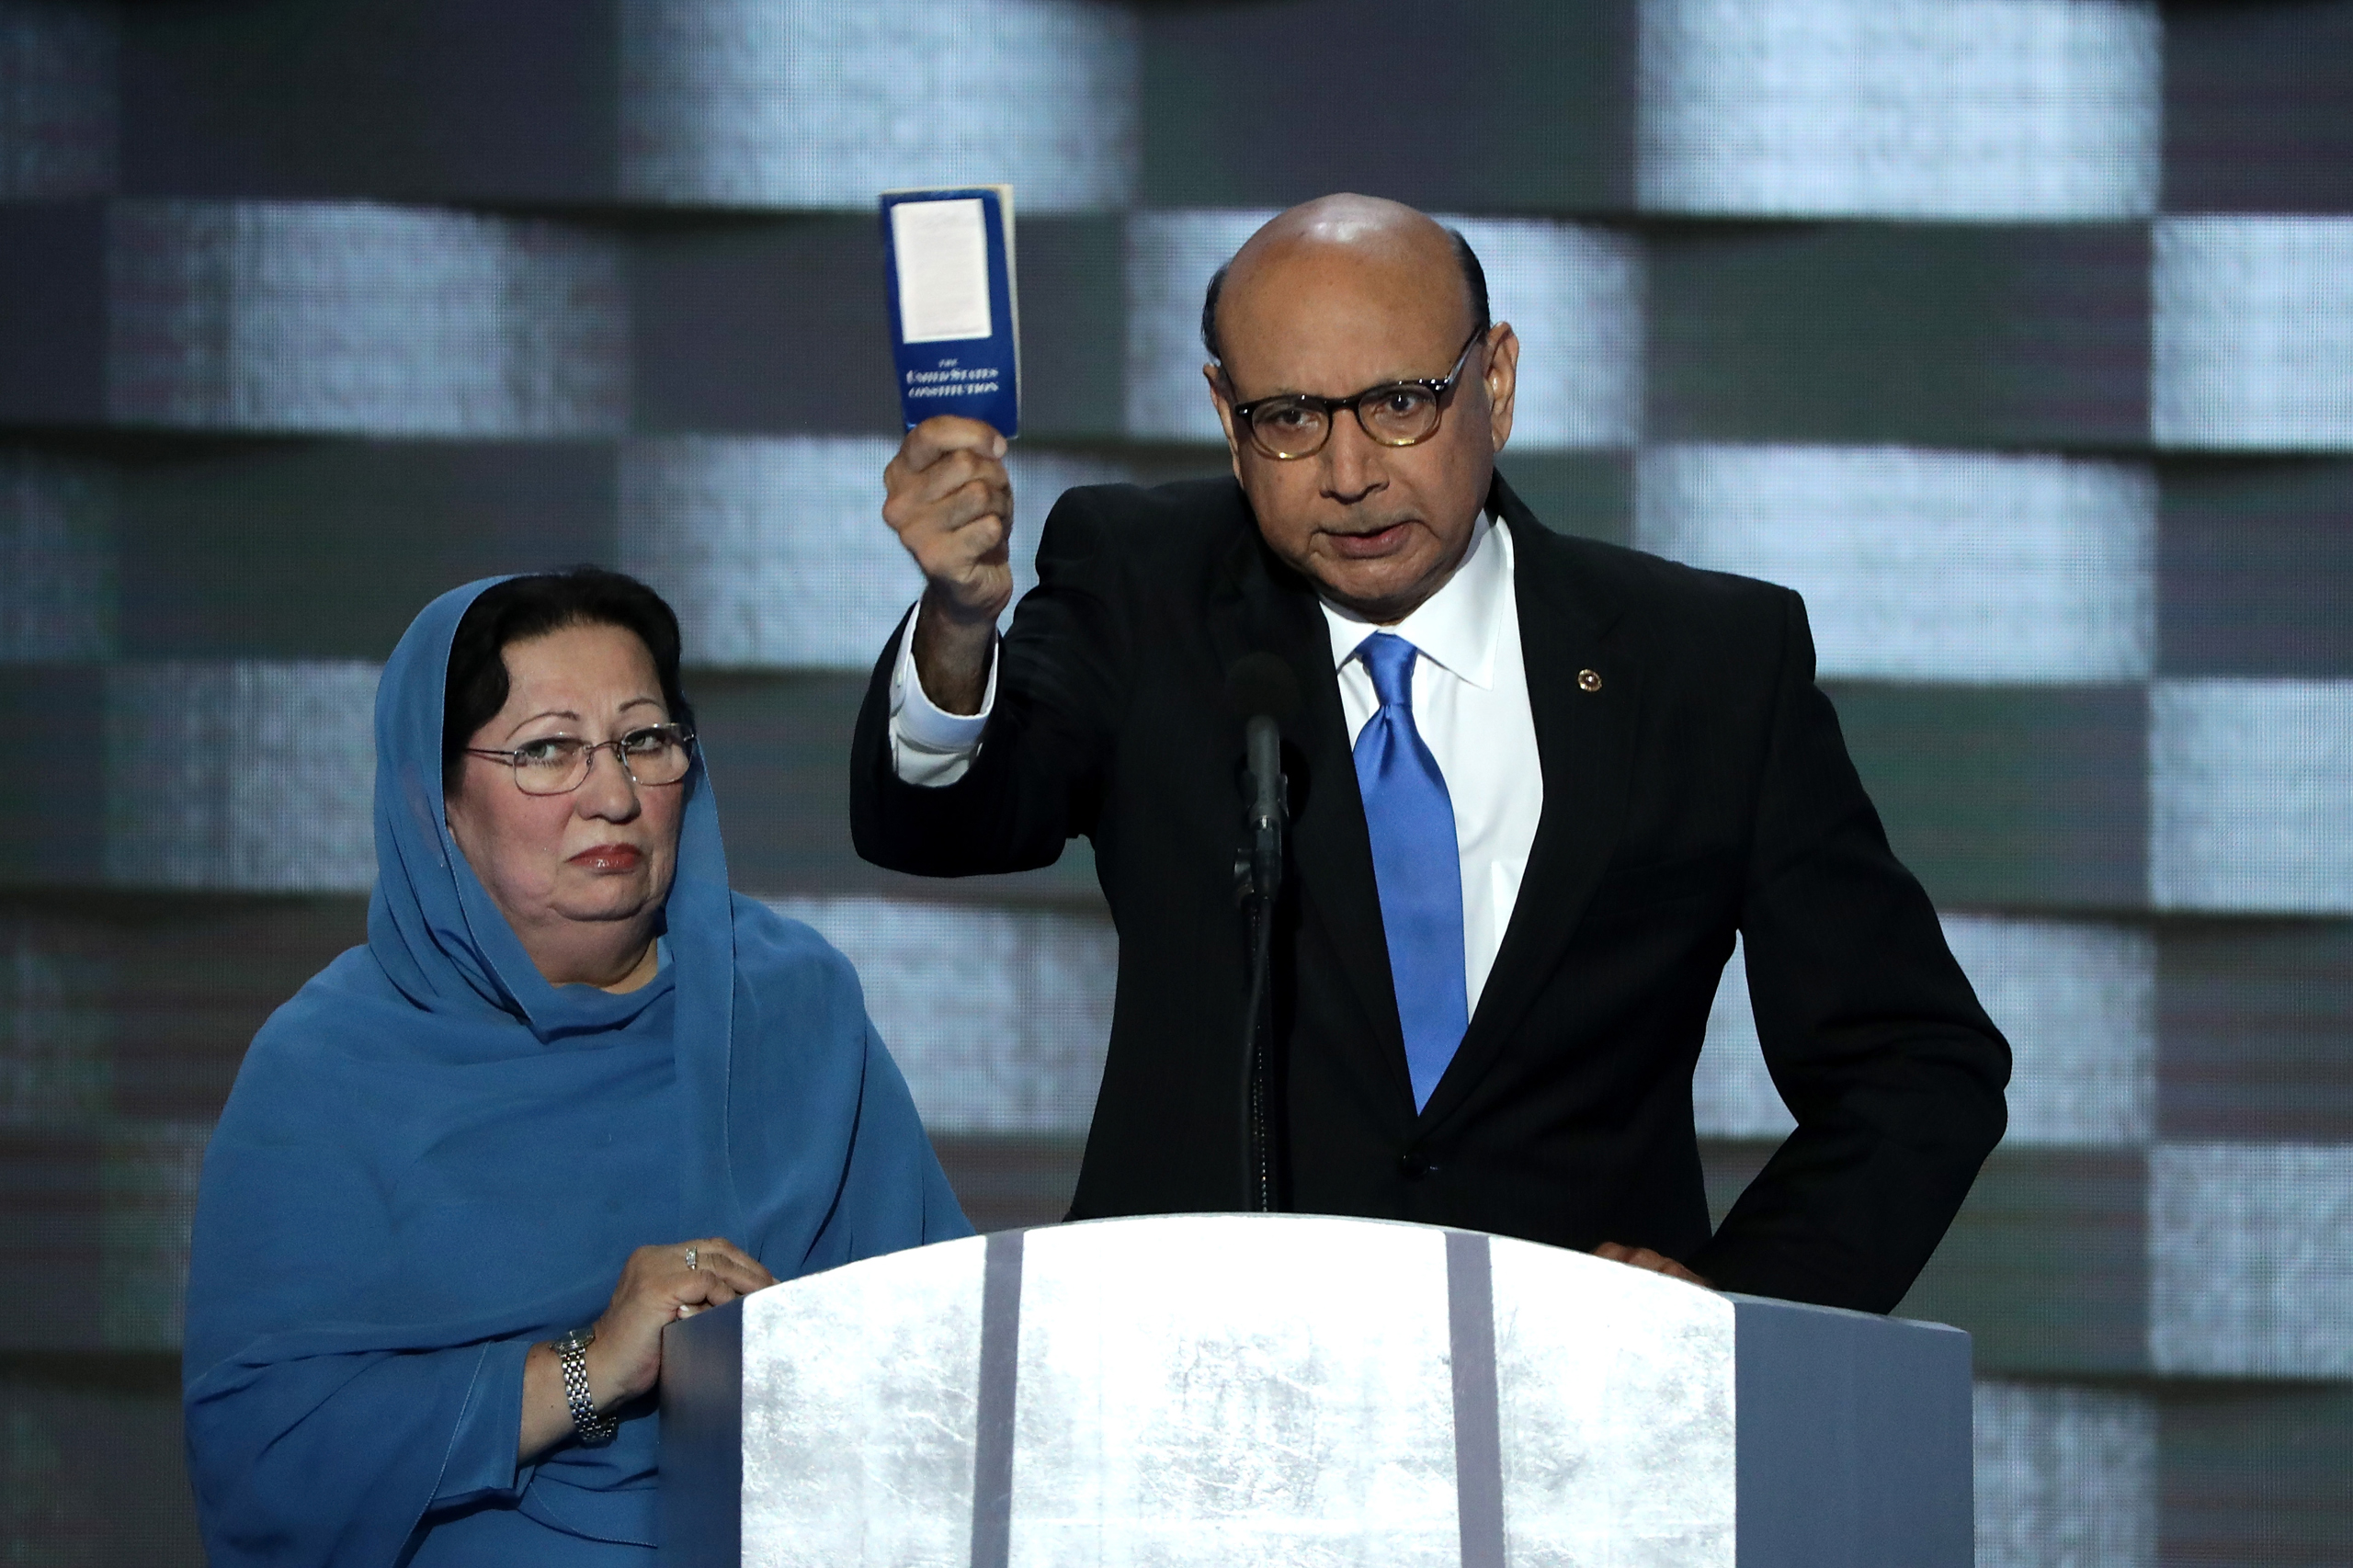 Khizr Khan, father of deceased Muslim U.S. Soldier Humayun S. M. Khan, holds up a booklet of the US Constitution as he delivers remarks on the fourth day of the Democratic National Convention at the Wells Fargo Center in Philadelphia, Pennsylvania, on July 28, 2016.